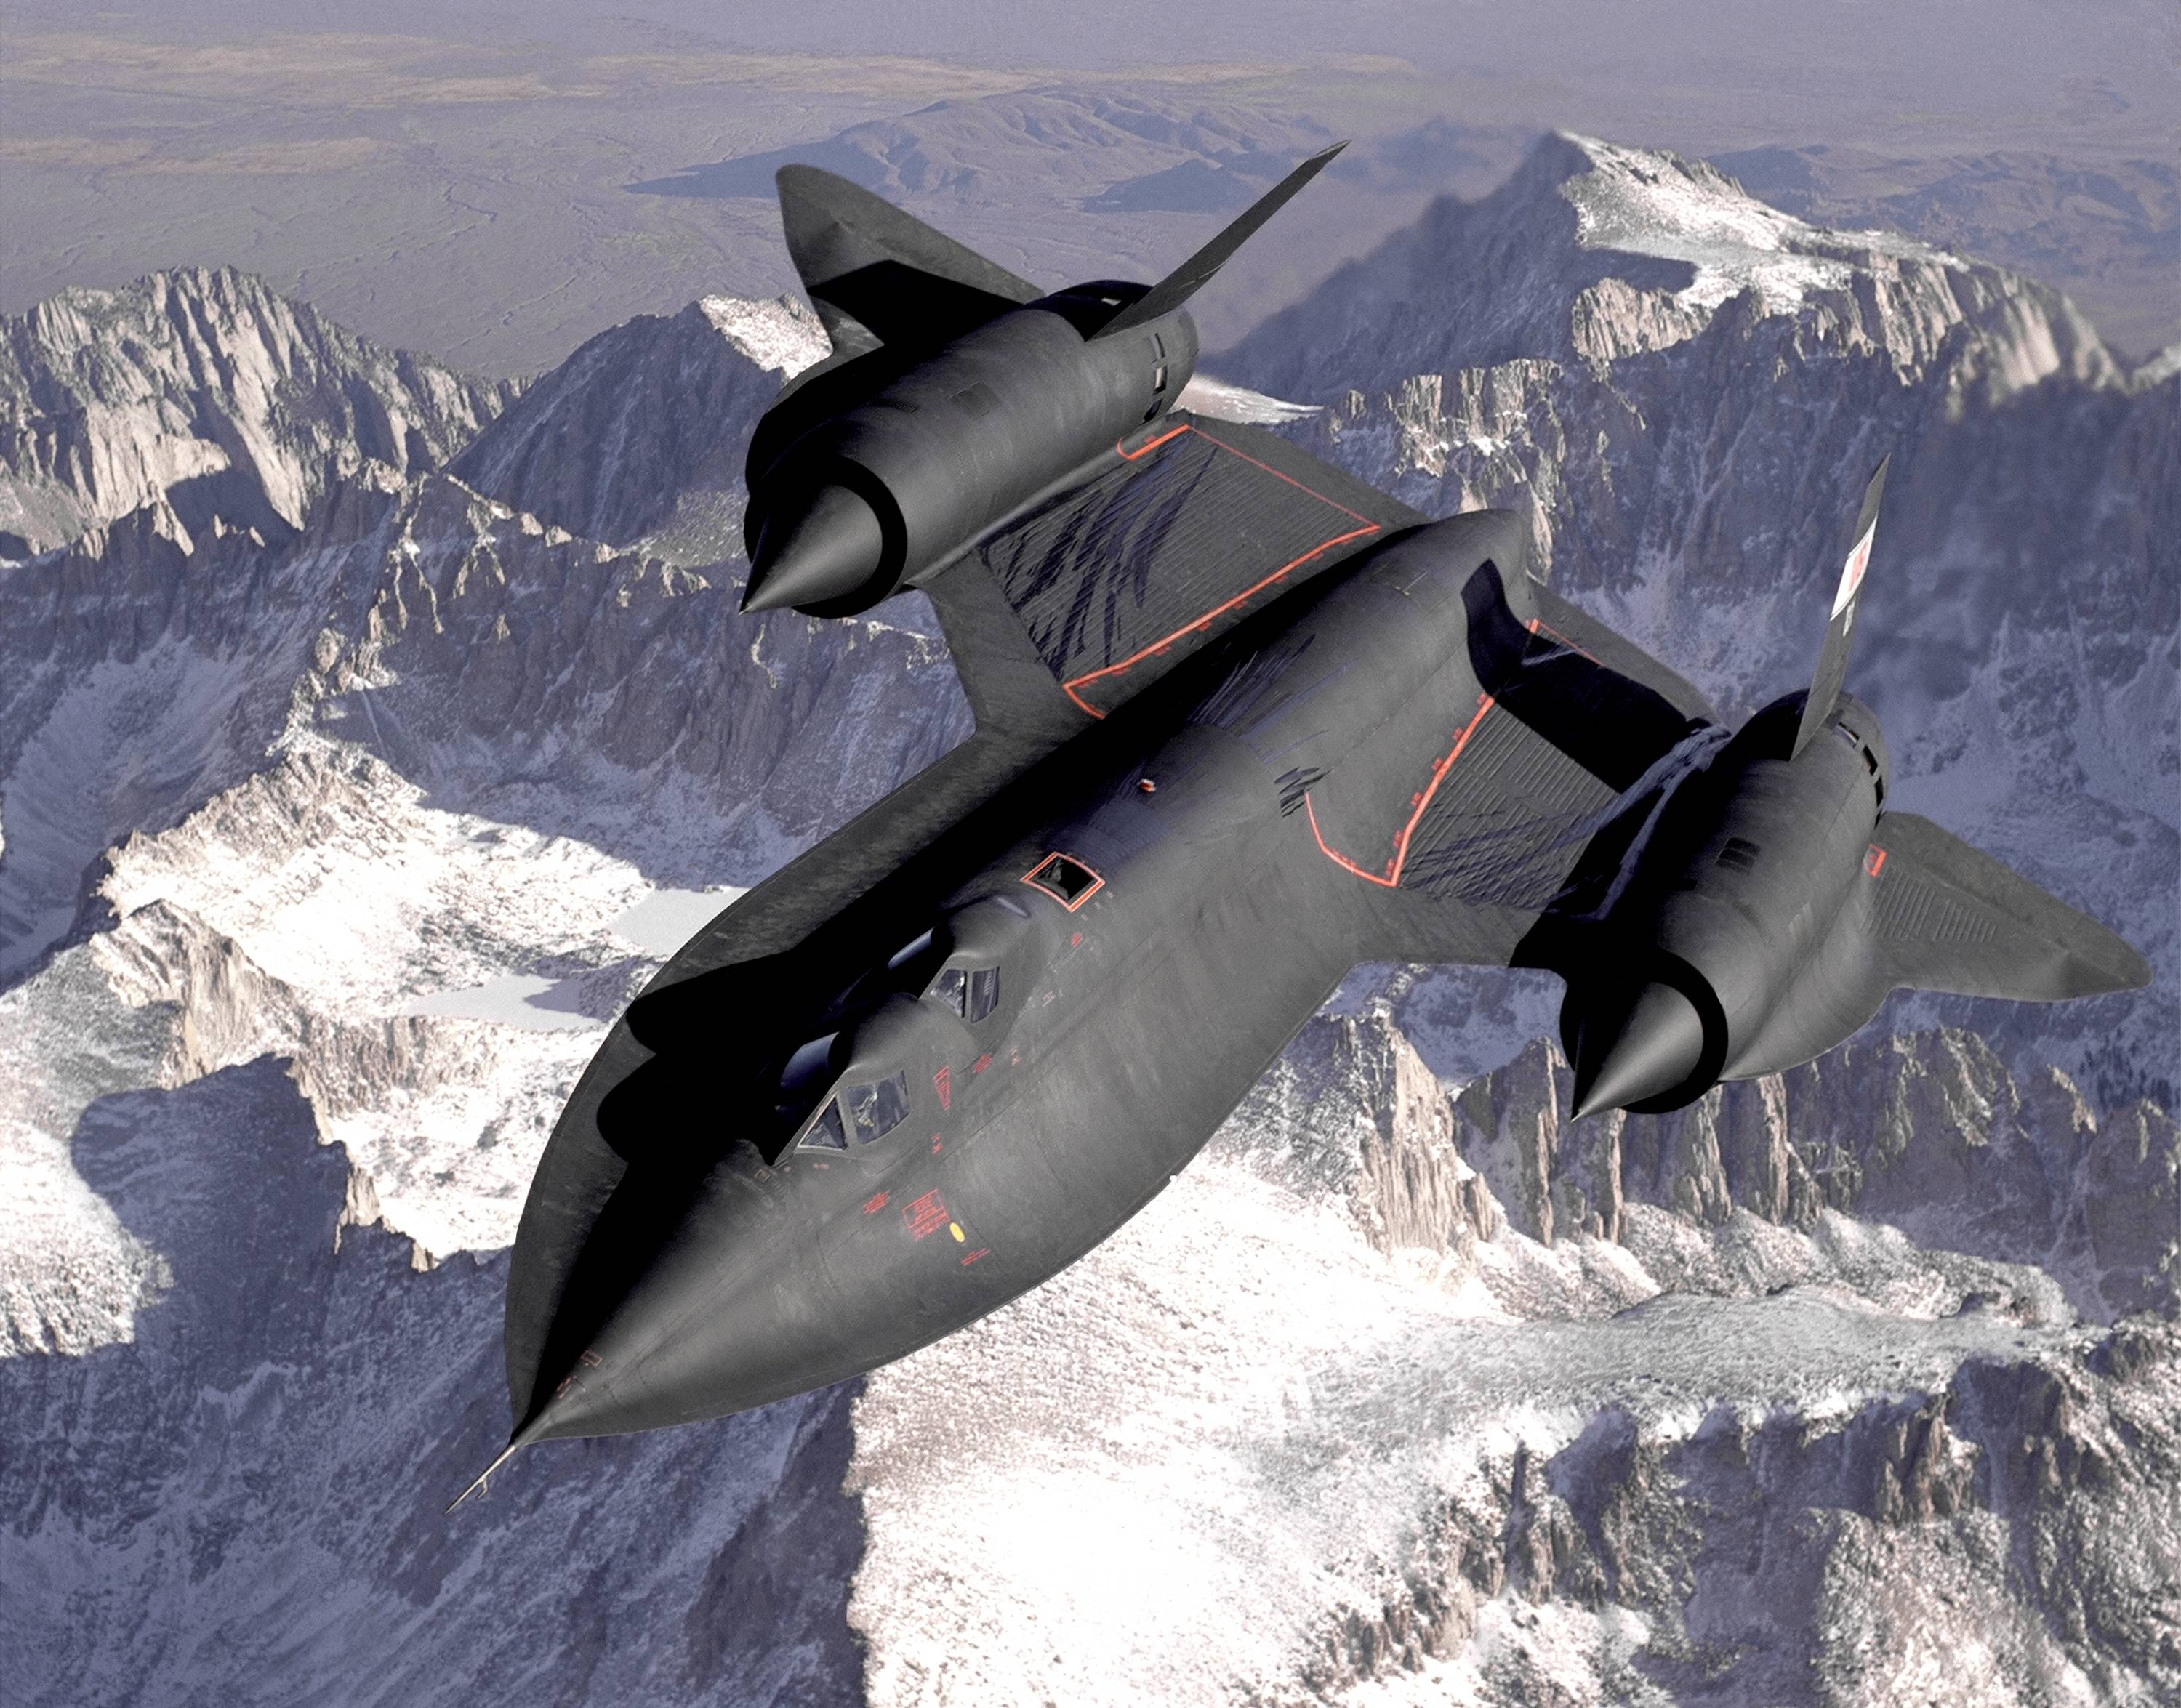 Sr71 blackbird wallpapers wallpaper cave - Sr 71 wallpaper ...